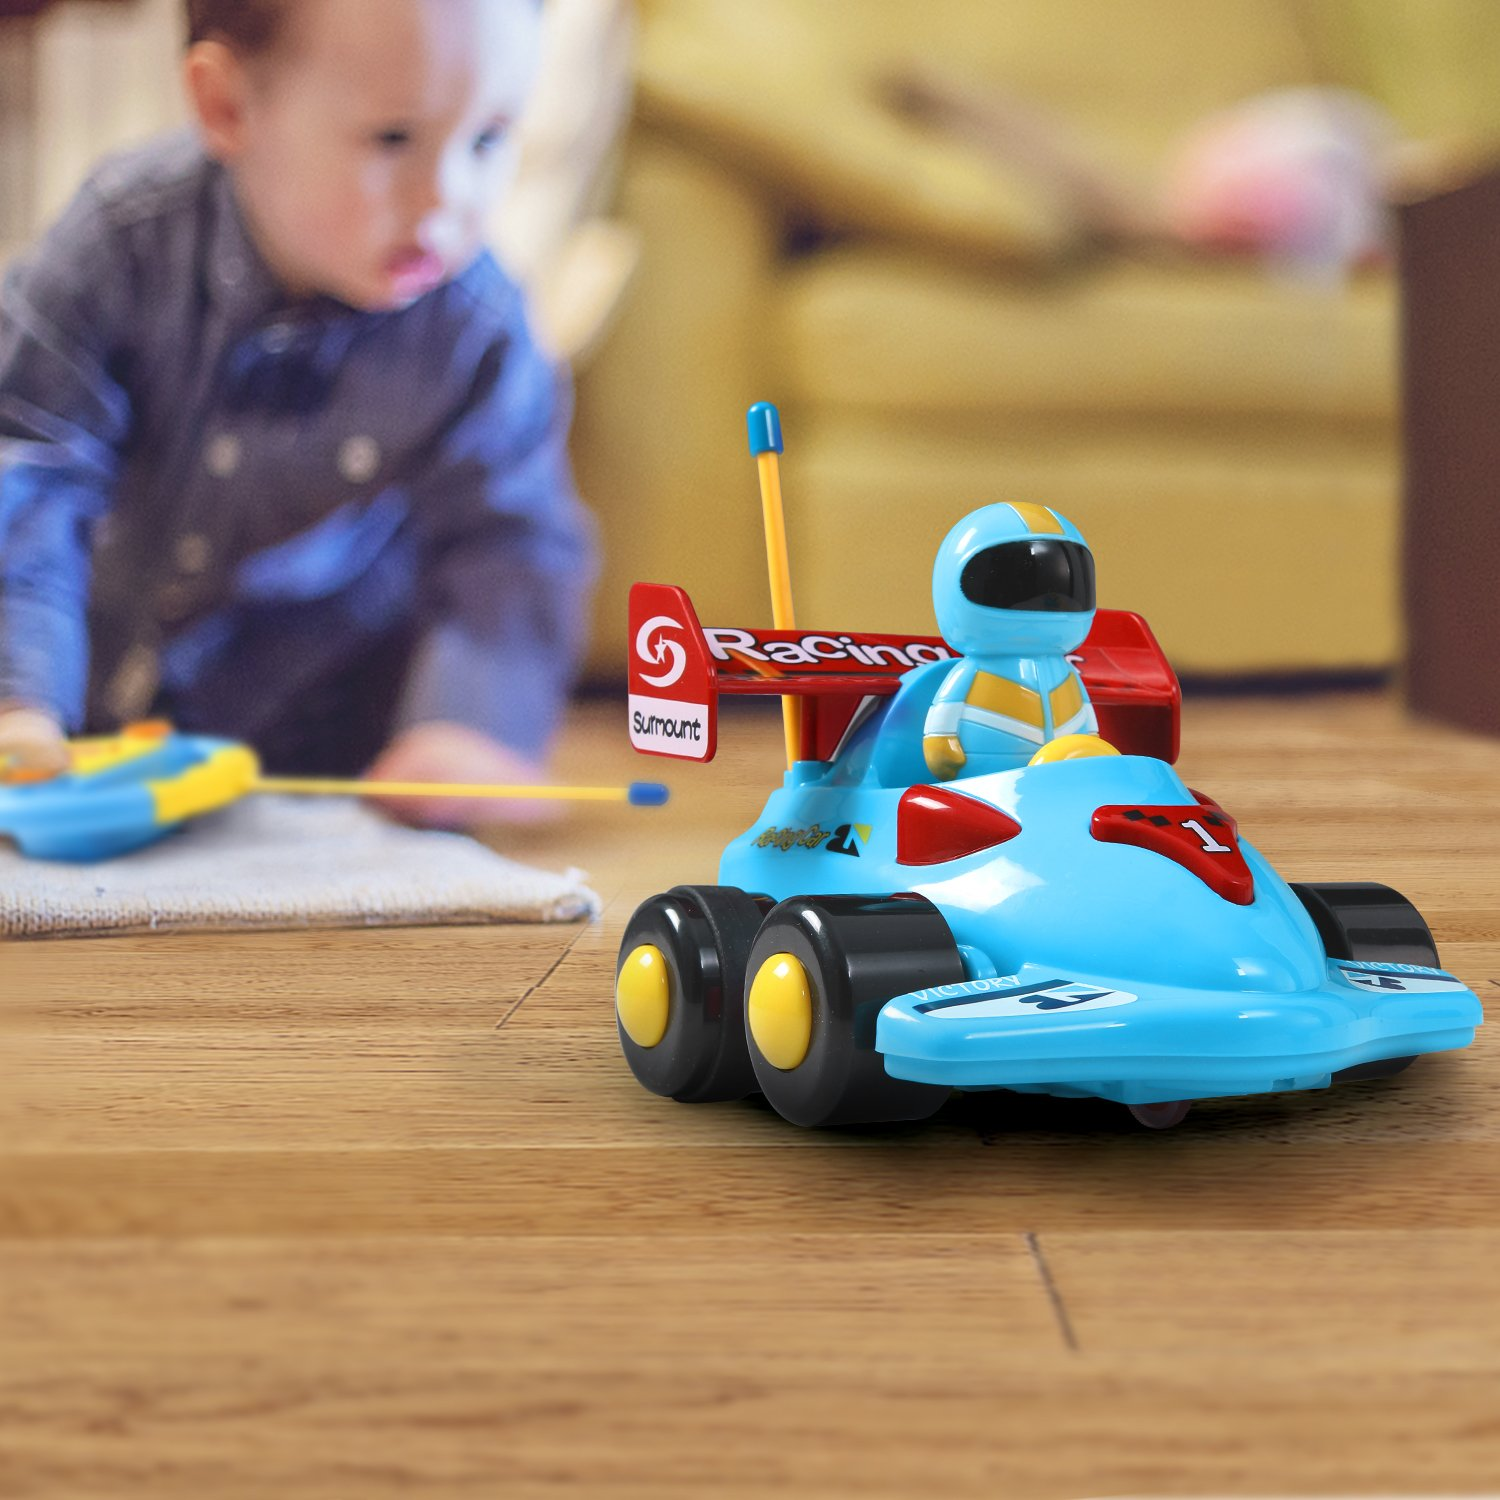 ANTAPRCIS Cartoon Remote Control Car Racer Toys Toddlers Birthday Gift Present 3 Year Olds Boys